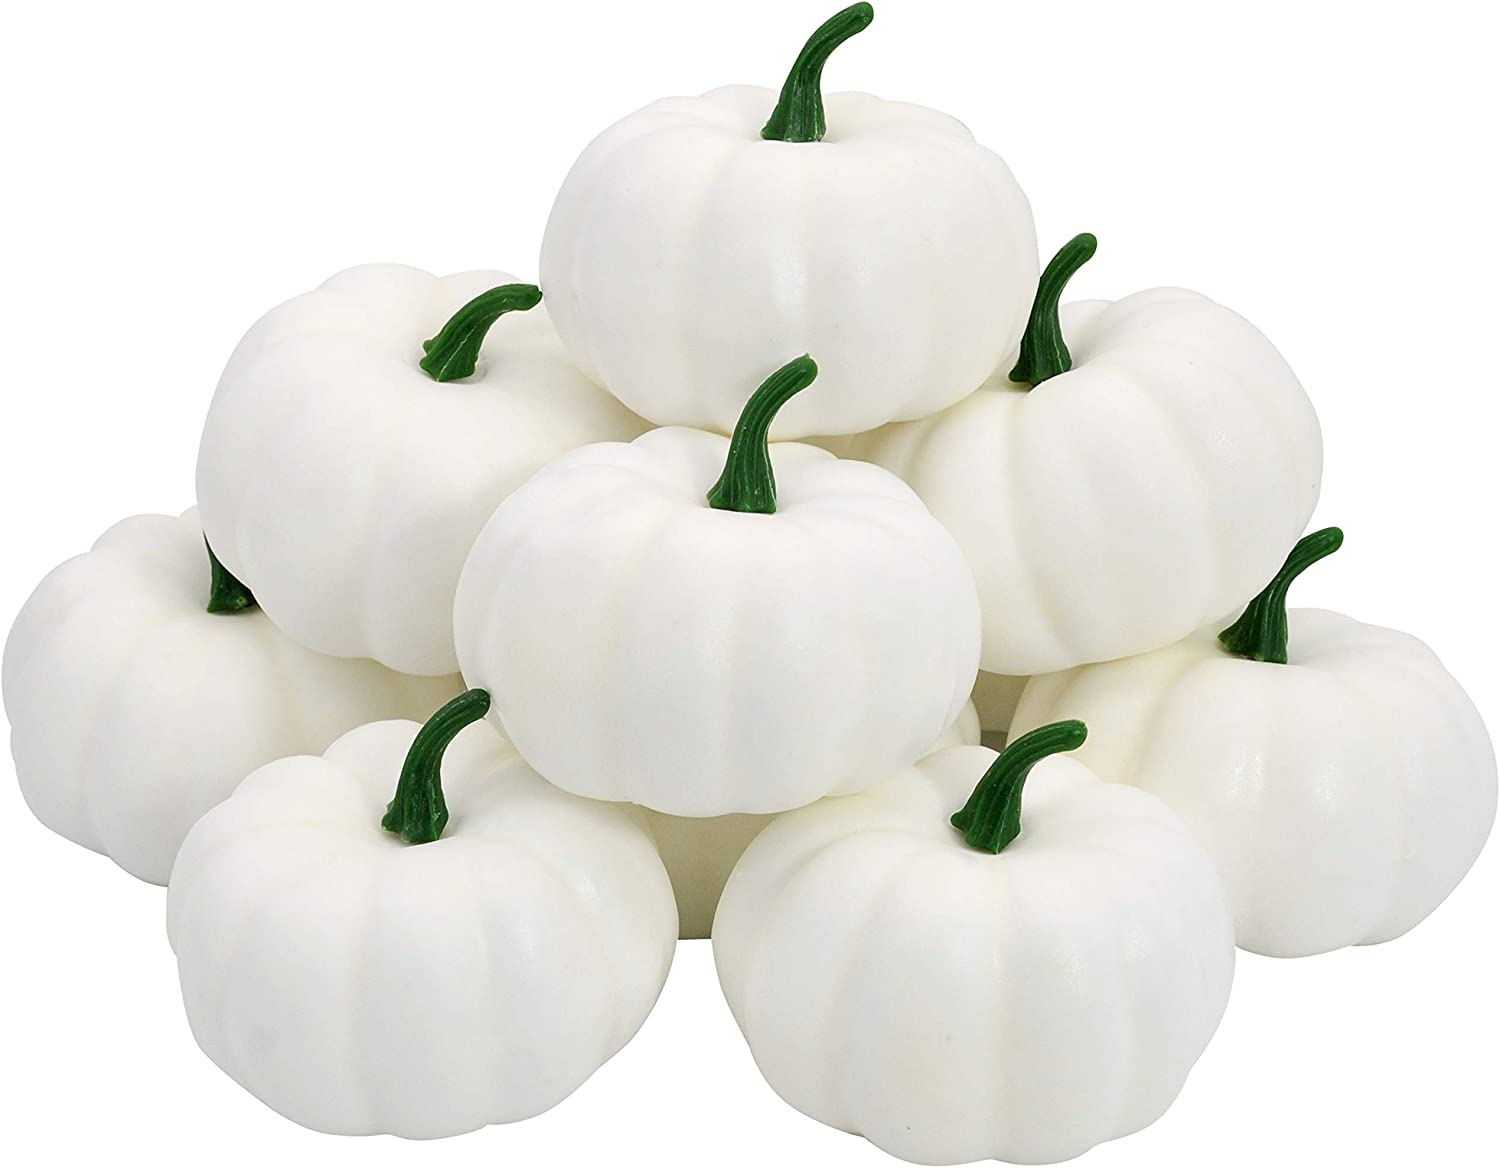 Thanksgiving Artificial White Pumpkins 12 PCS Fake Home Decoration Assorted Size for Fall Harvest Decor, Thanksgiving or Halloween Decoration, Festival, Garden